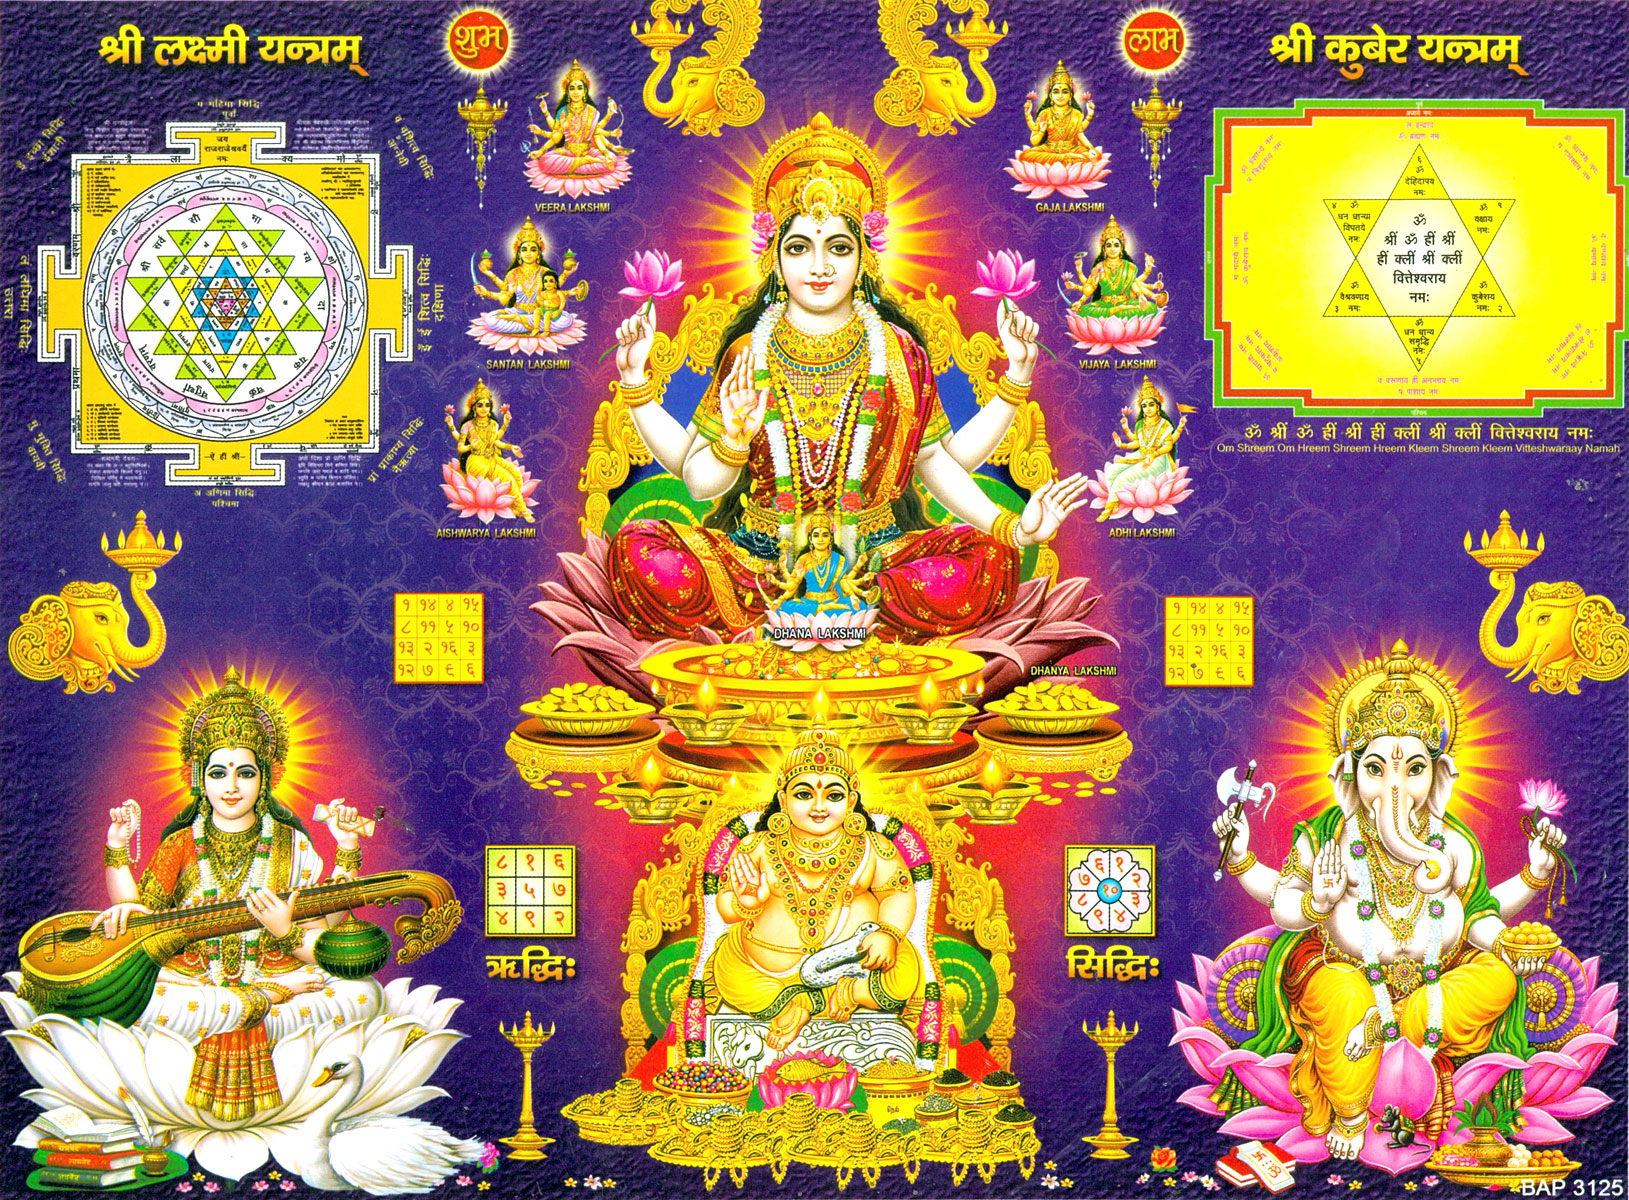 mahalaxmi yantra hd wallpaper